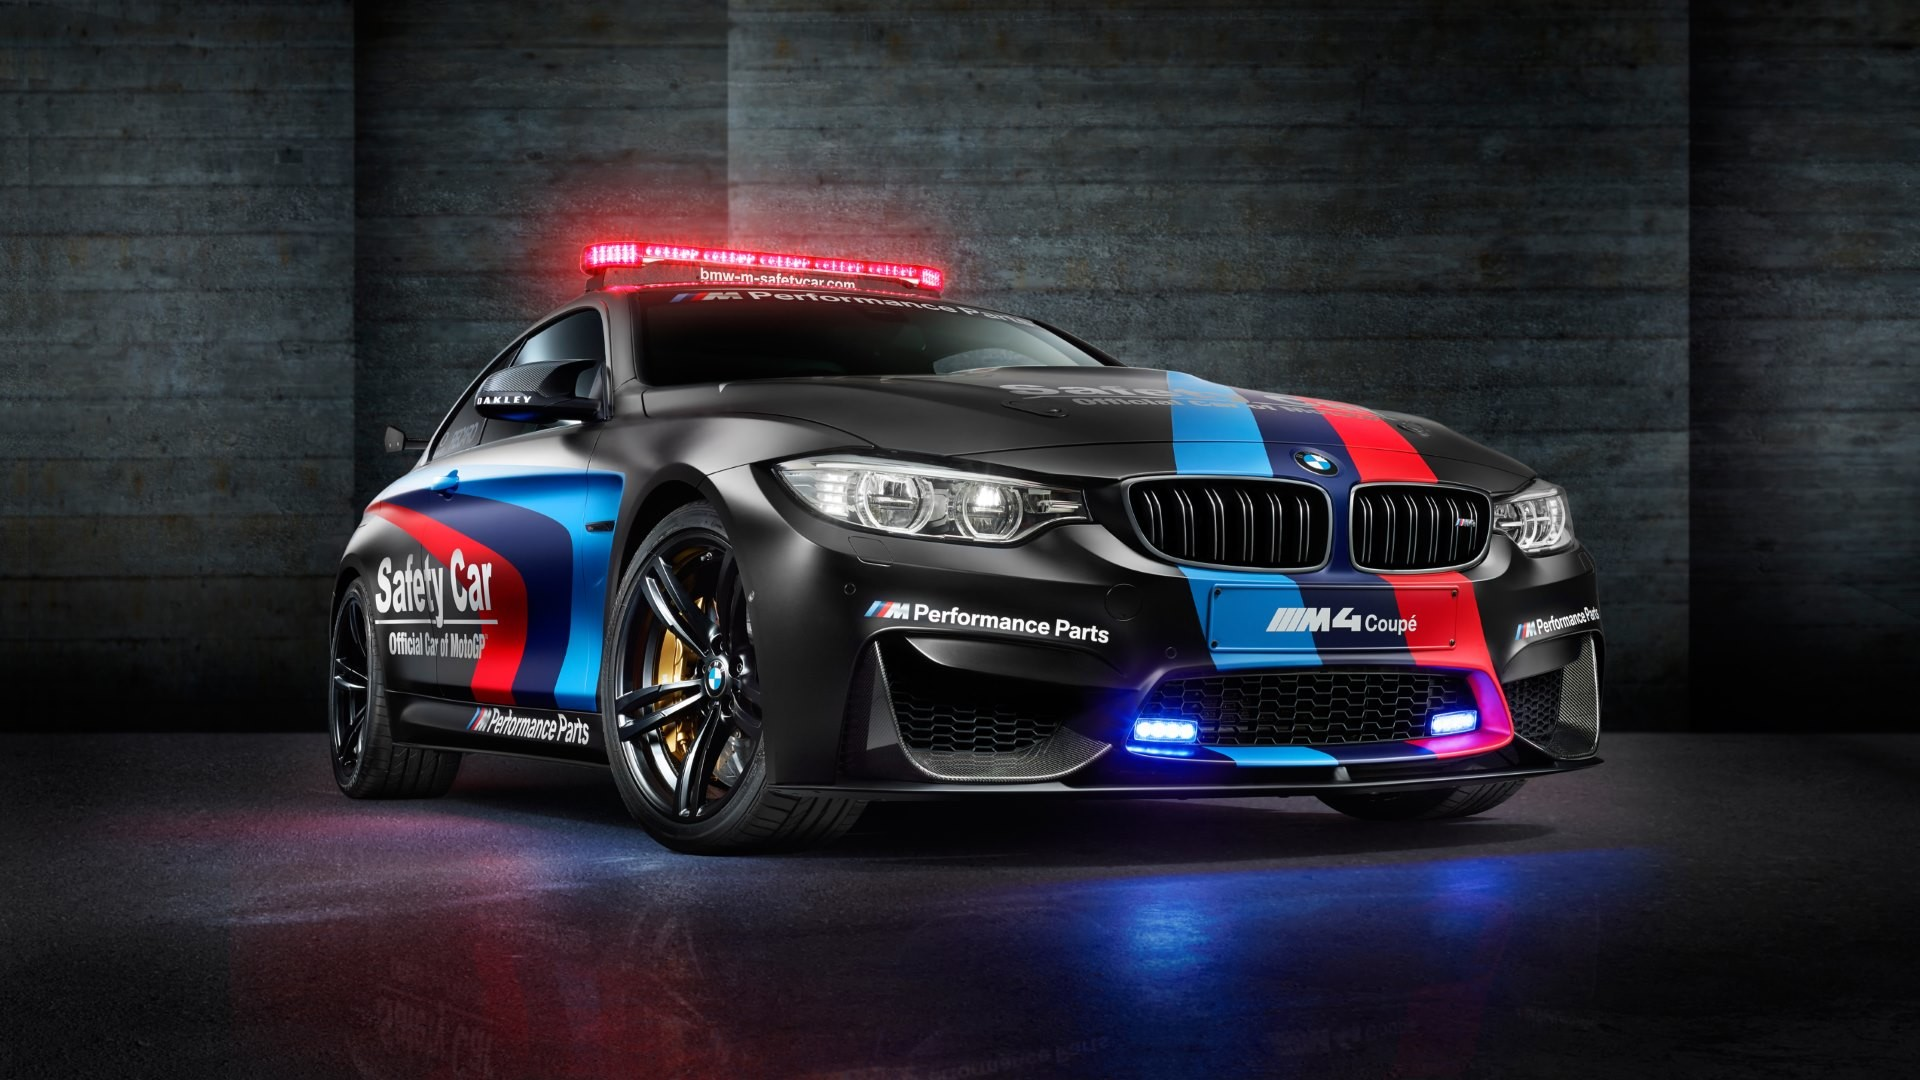 BMW M HD Wallpaper (57+ images)